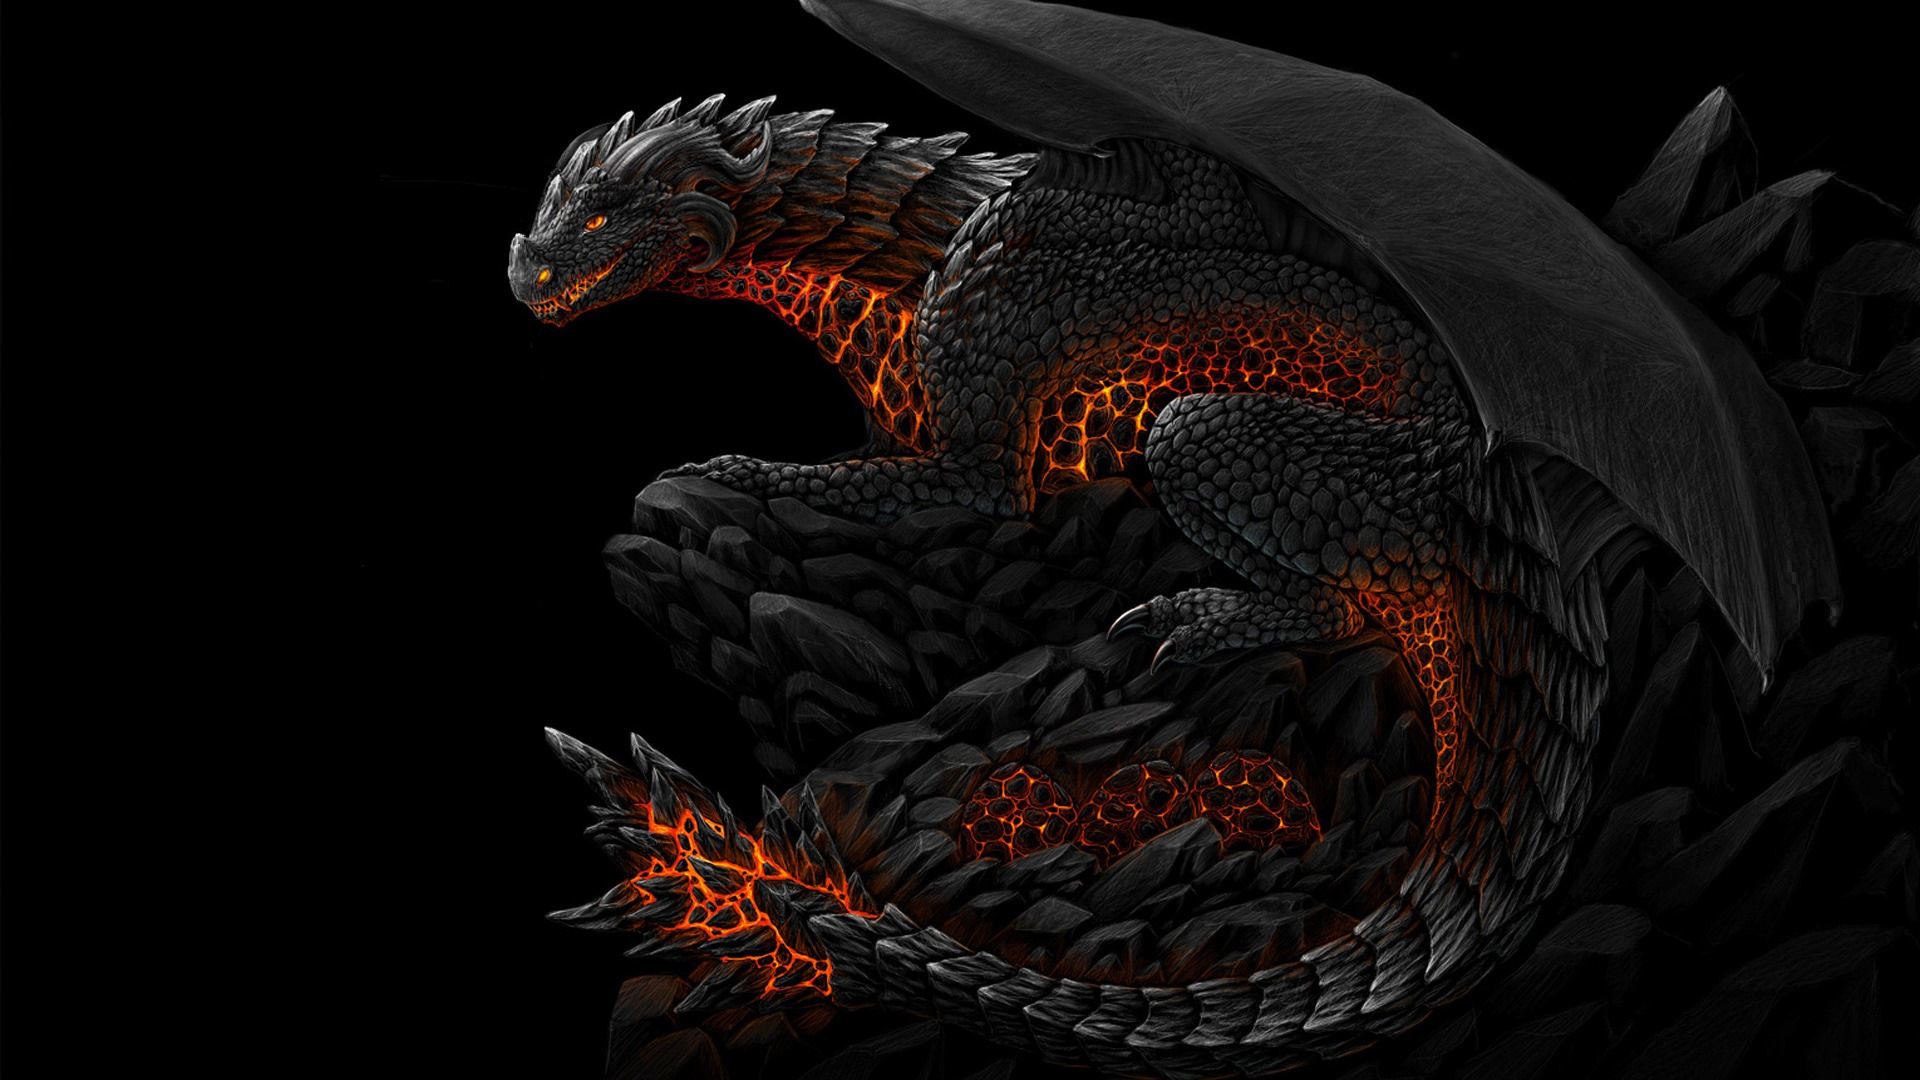 1920x1080 Black Dragon Wallpapers HD images